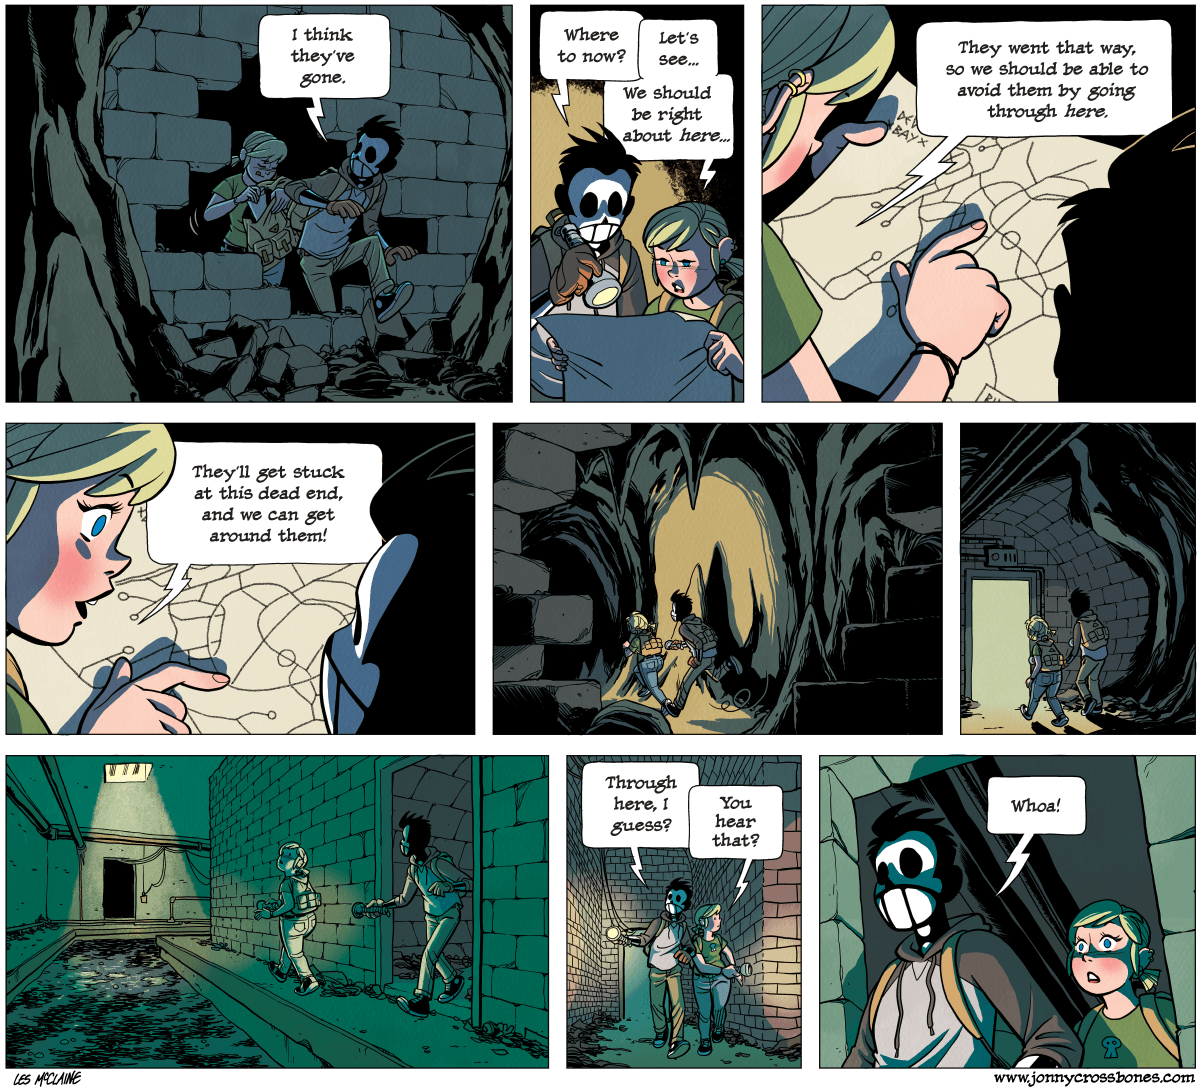 Dead Man at Devil's Cove, chapter 4, page 114A